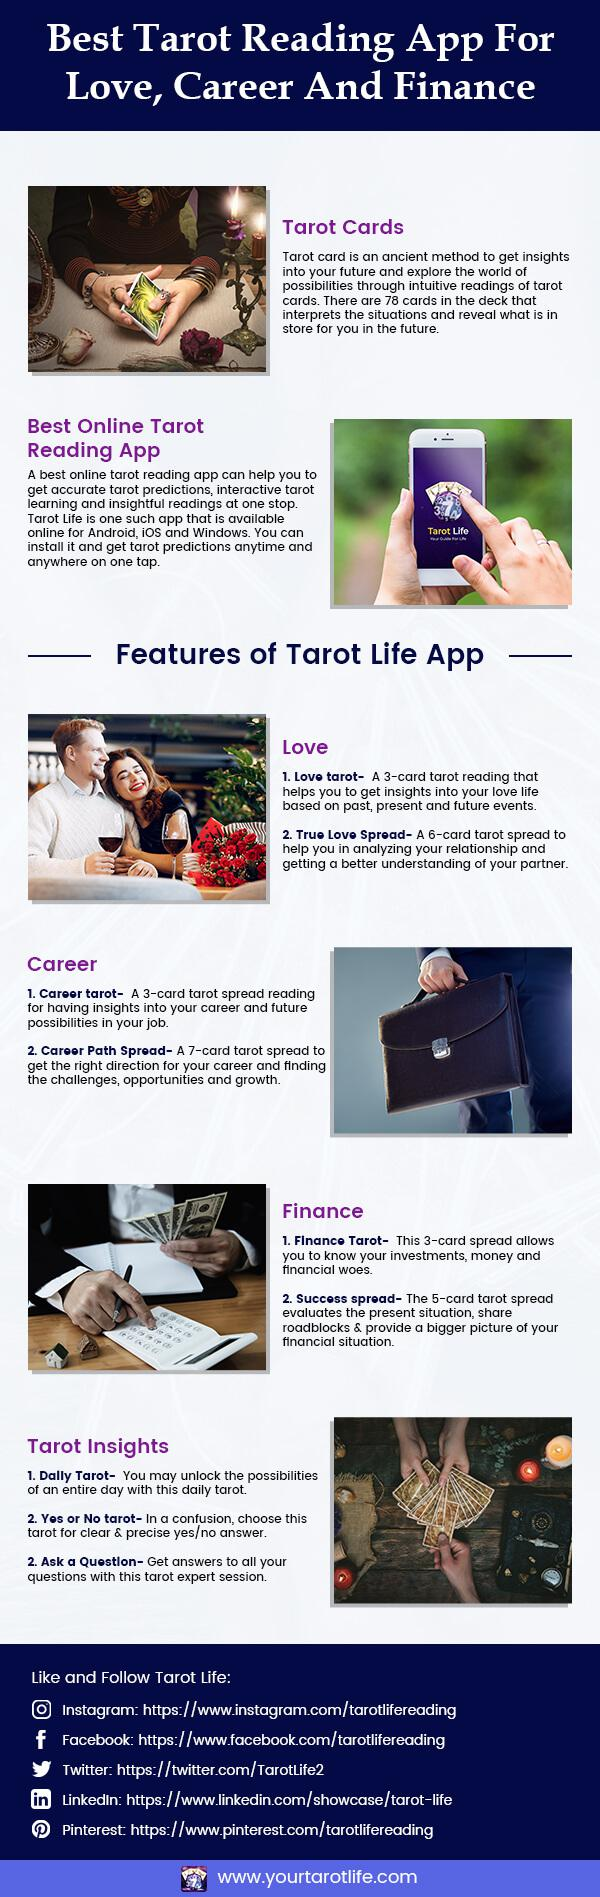 Best tarot reading app for love career and finance